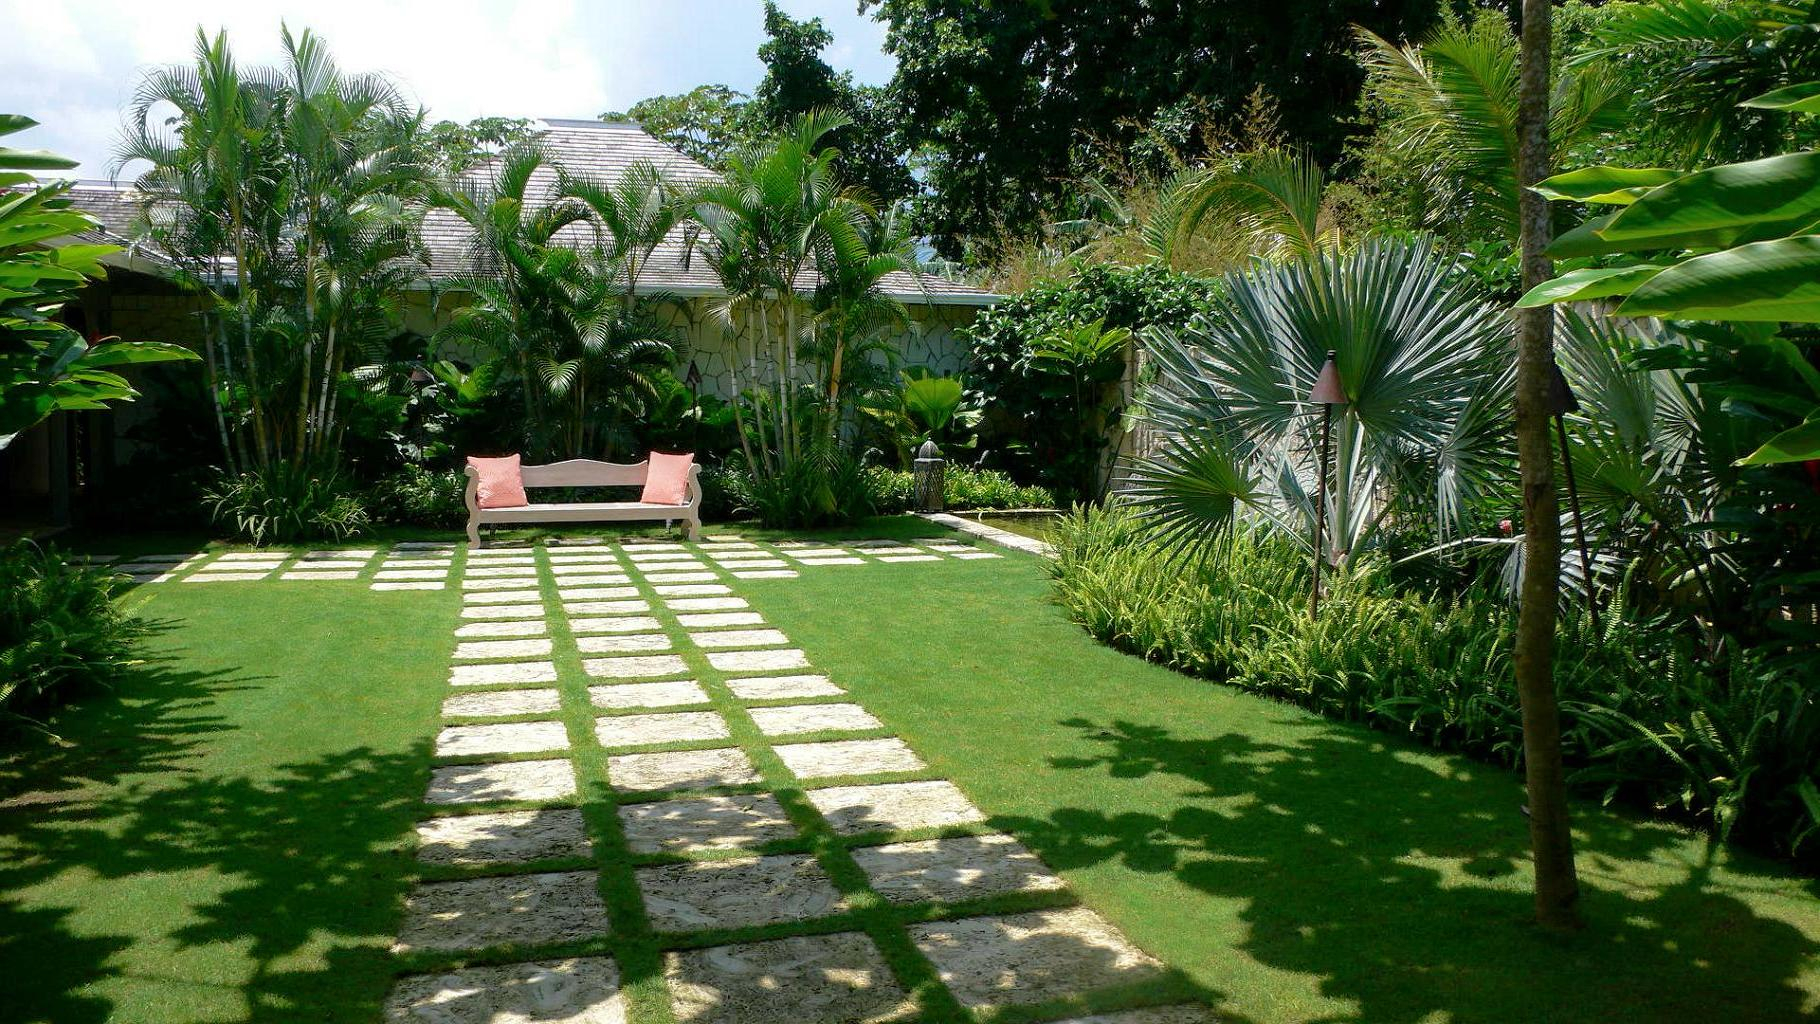 Tropical Garden Design Landscaping In Brisbane Queensland Au throughout 14 Awesome Concepts of How to Build Tropical Backyard Landscaping